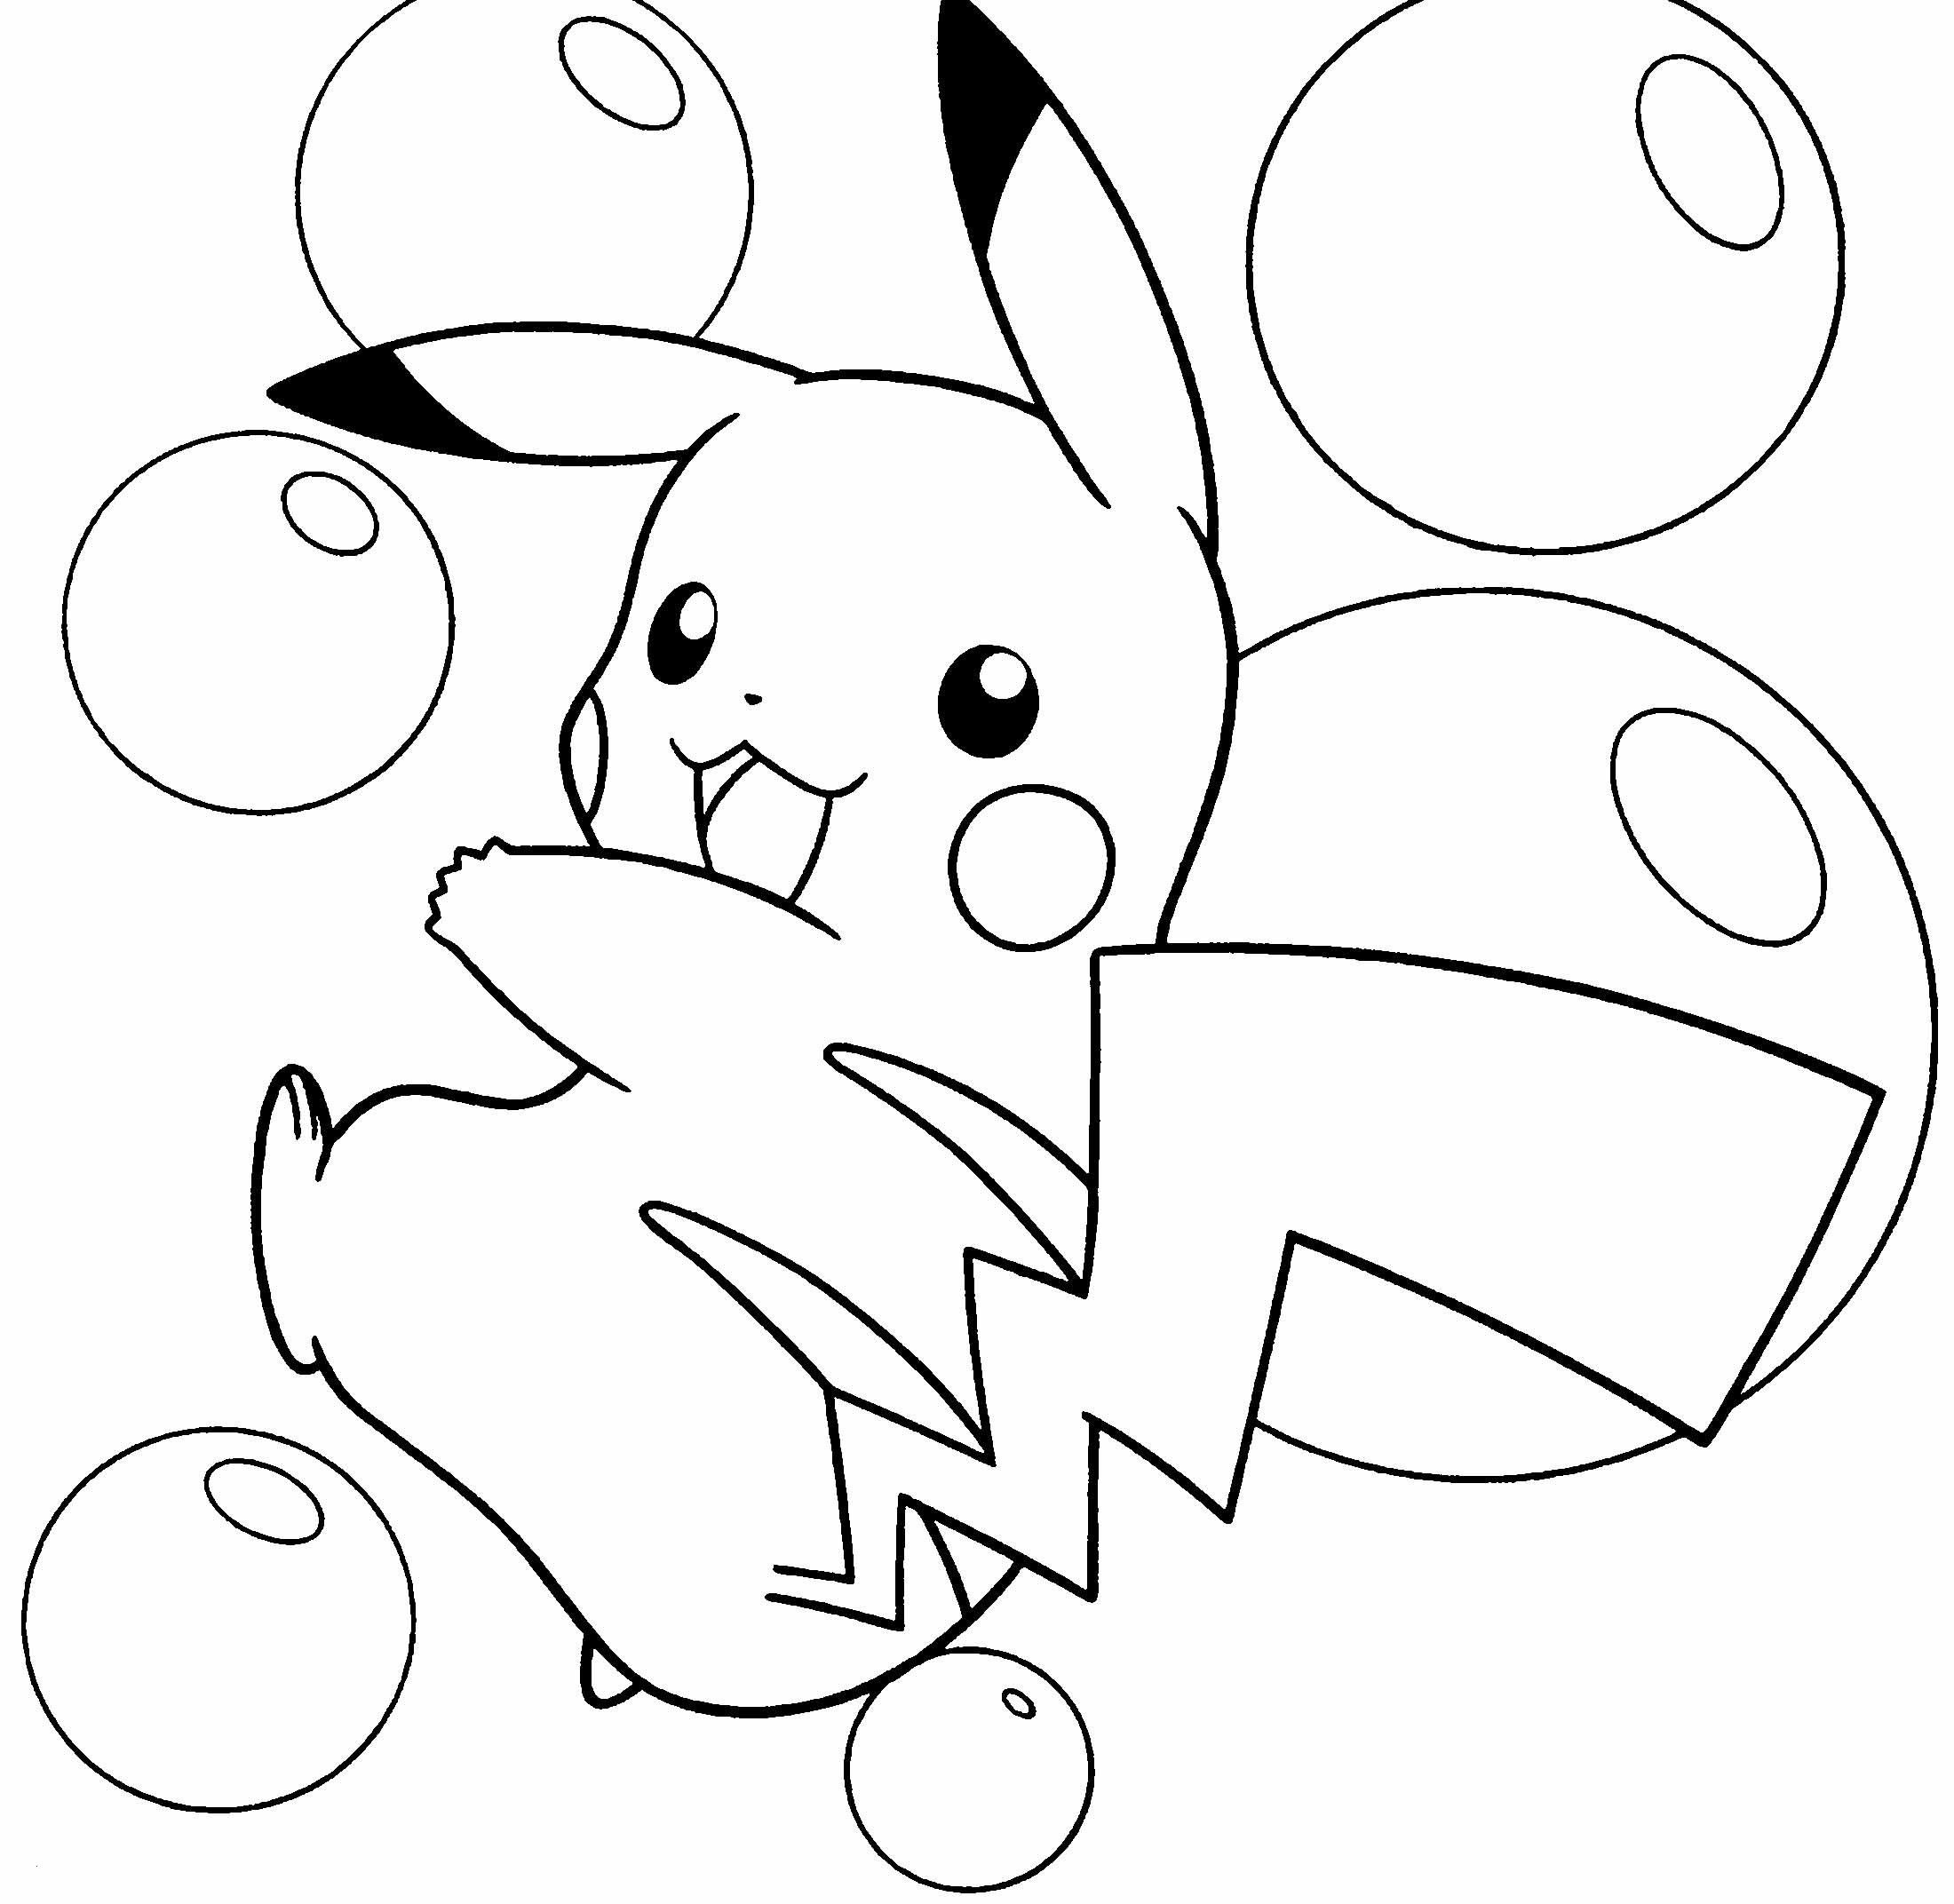 Pikachu Colouring Pages Online Through The Thousand Photos On